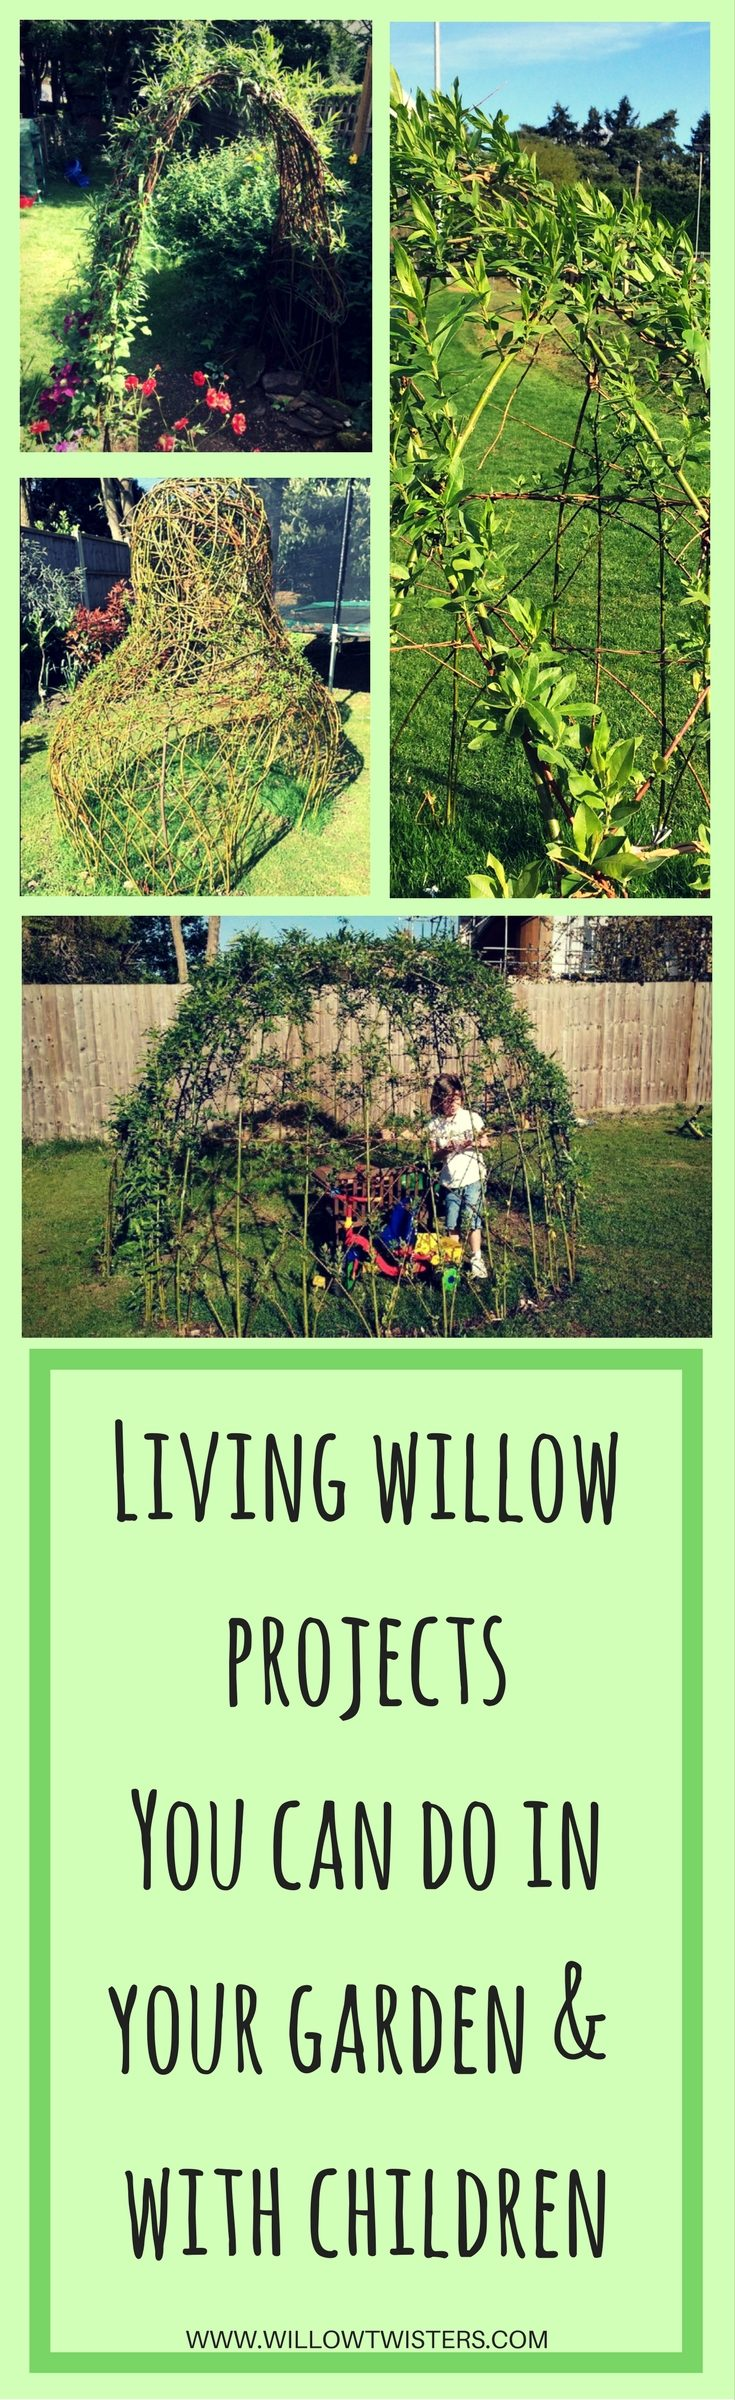 living willow sculptures structures